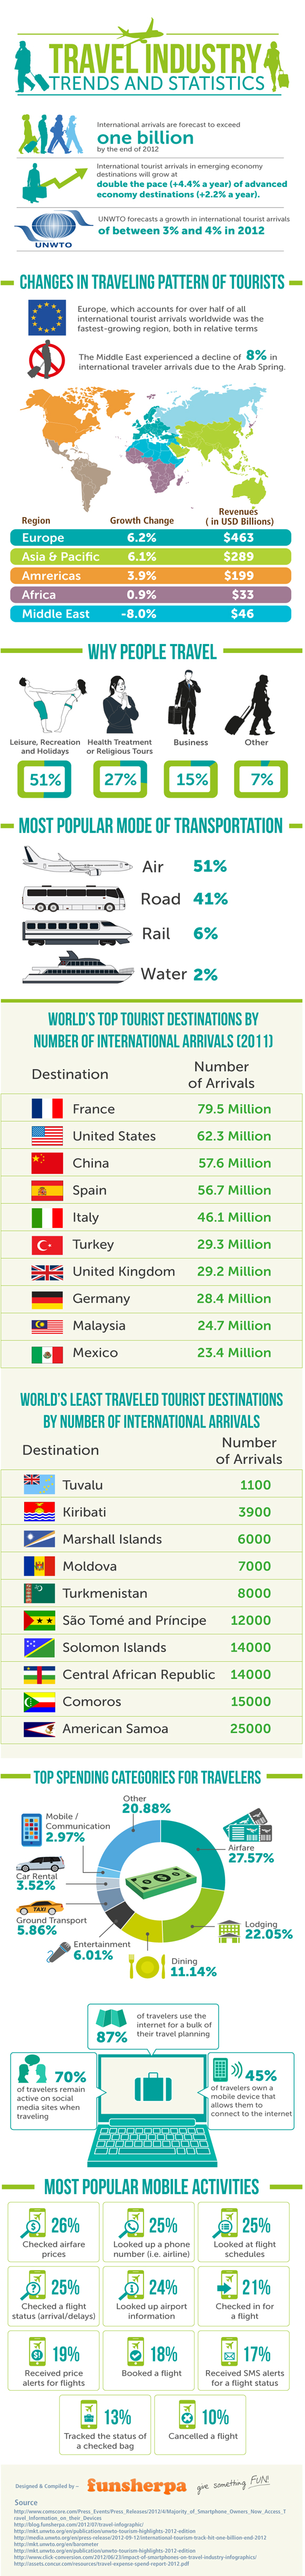 travel-industry-trends-2012_50726c441d26a